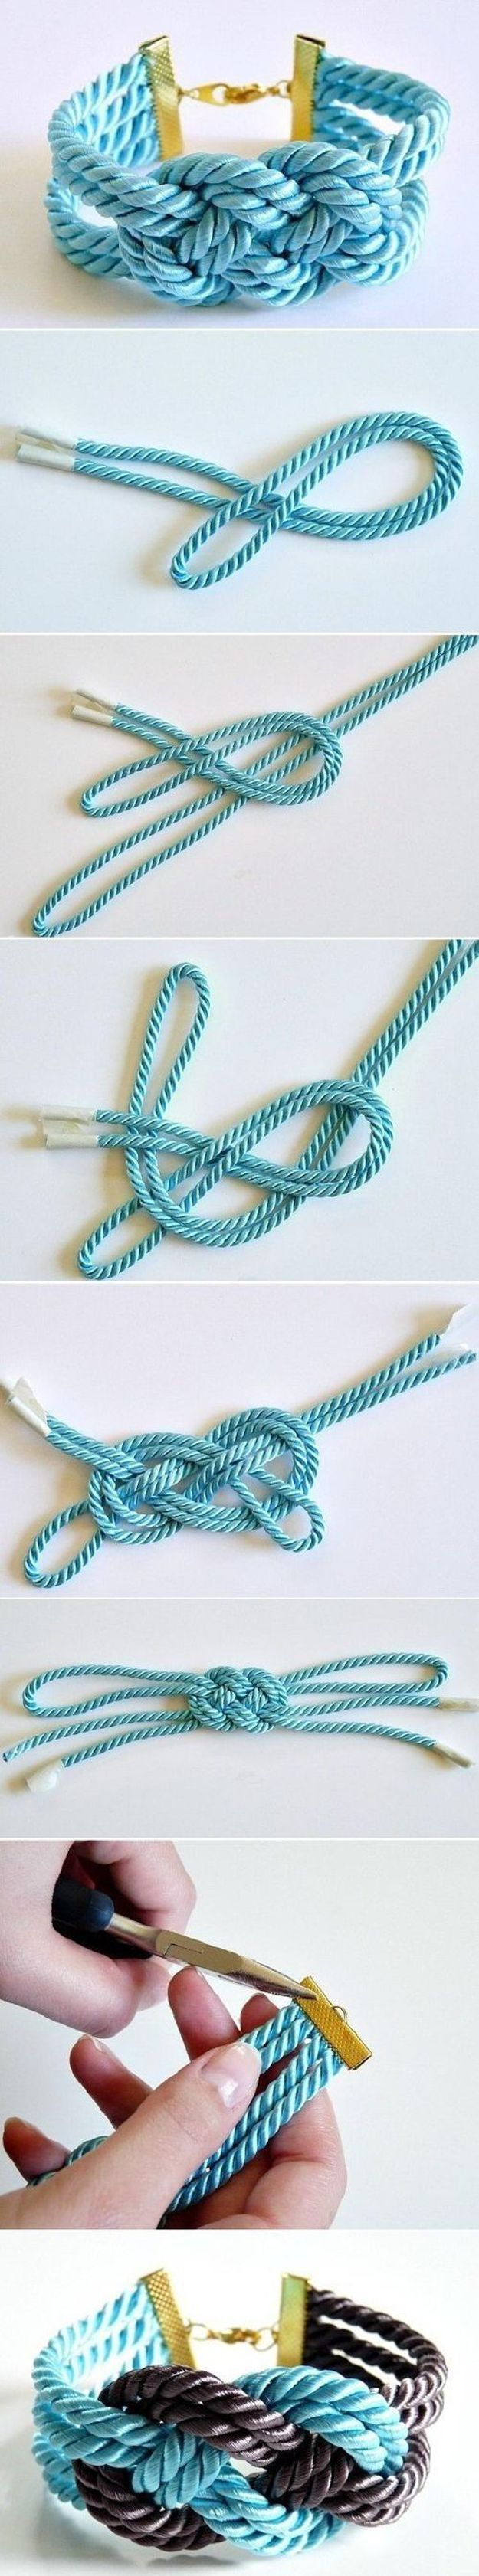 DIY Bracelets Easy Tutorials! DIY Rope Bracelets and Cool Jewelry Crafts Projects